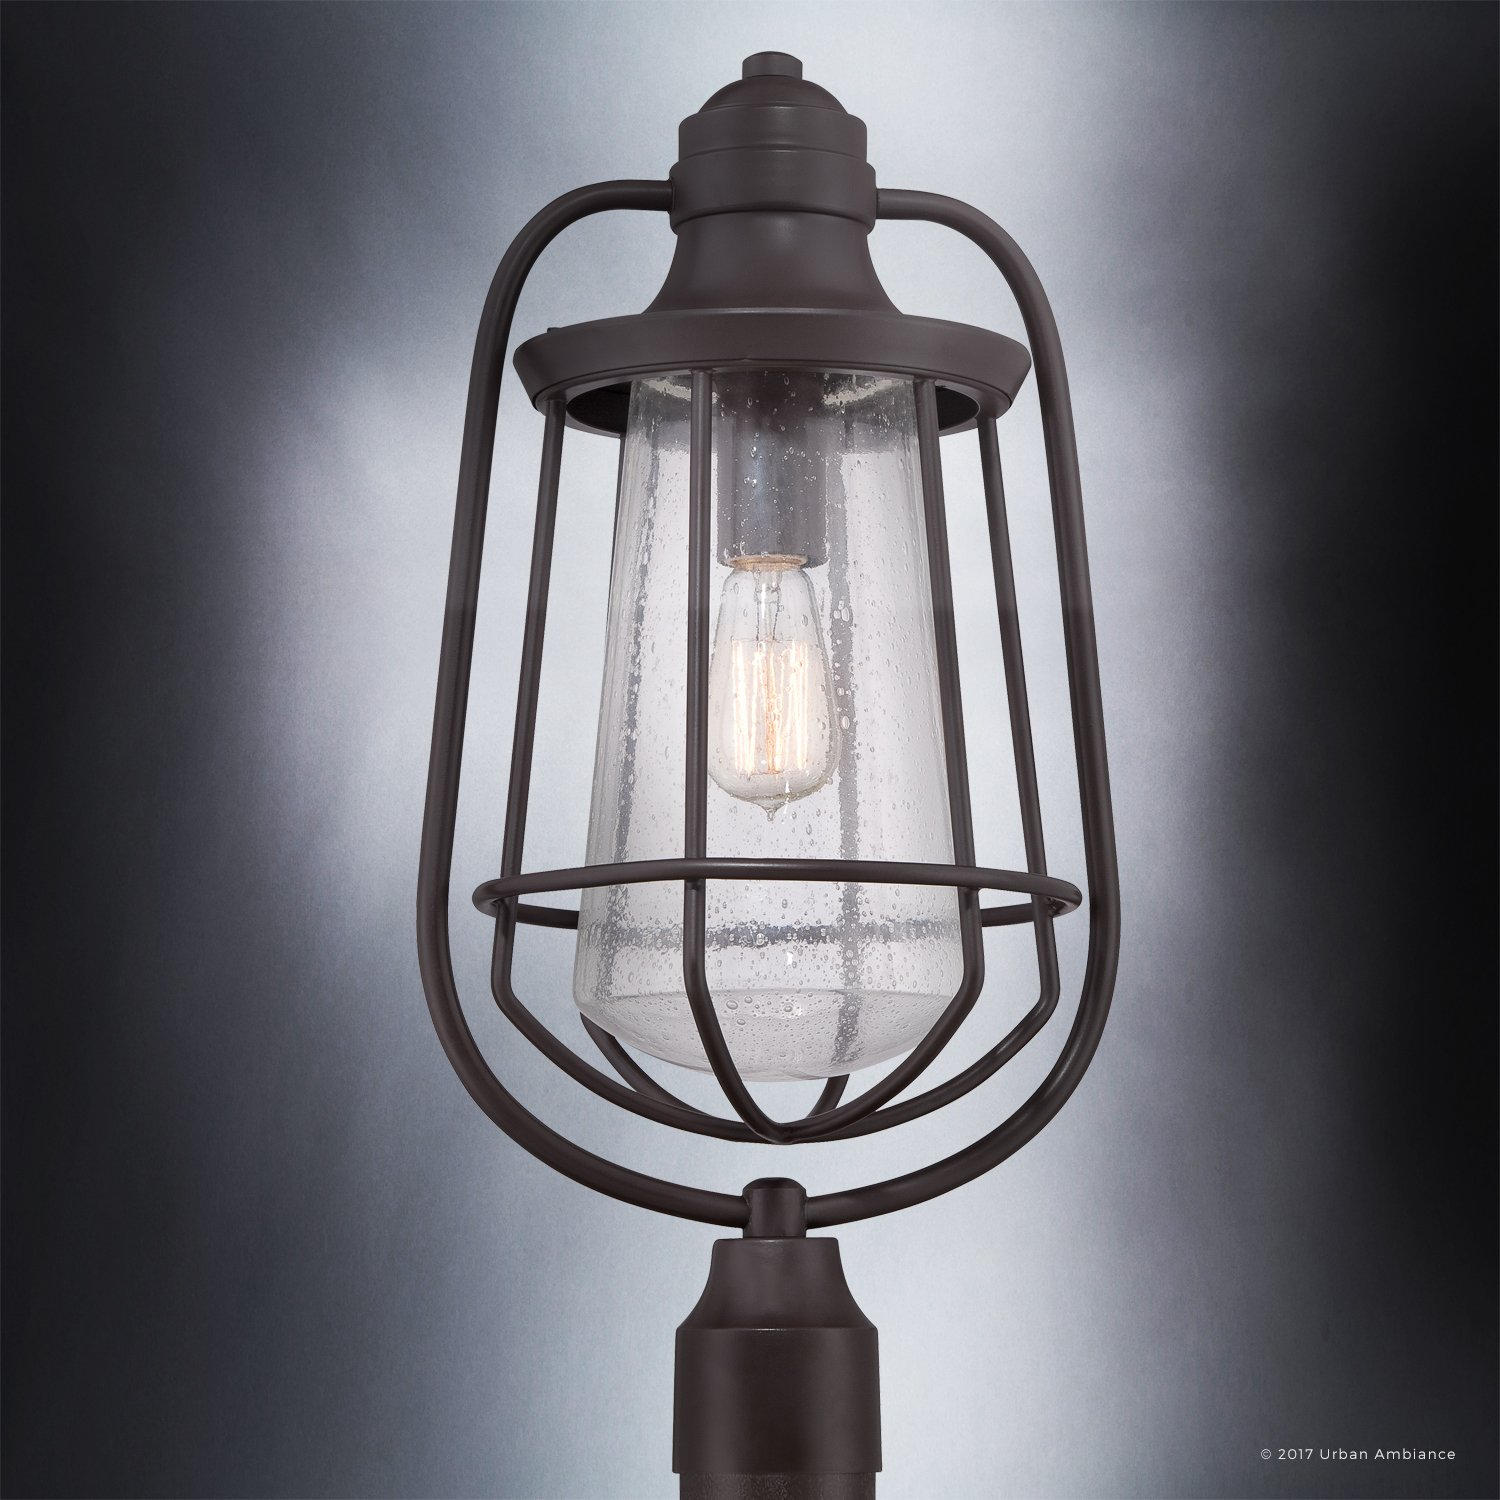 Luxury Vintage Outdoor Post Light, Large Size: 23''H x 11''W, with Nautical Style Elements, Cage Design, Estate Bronze Finish and Seeded Glass, Includes Edison Bulb, UQL1124 by Urban Ambiance by Urban Ambiance (Image #4)